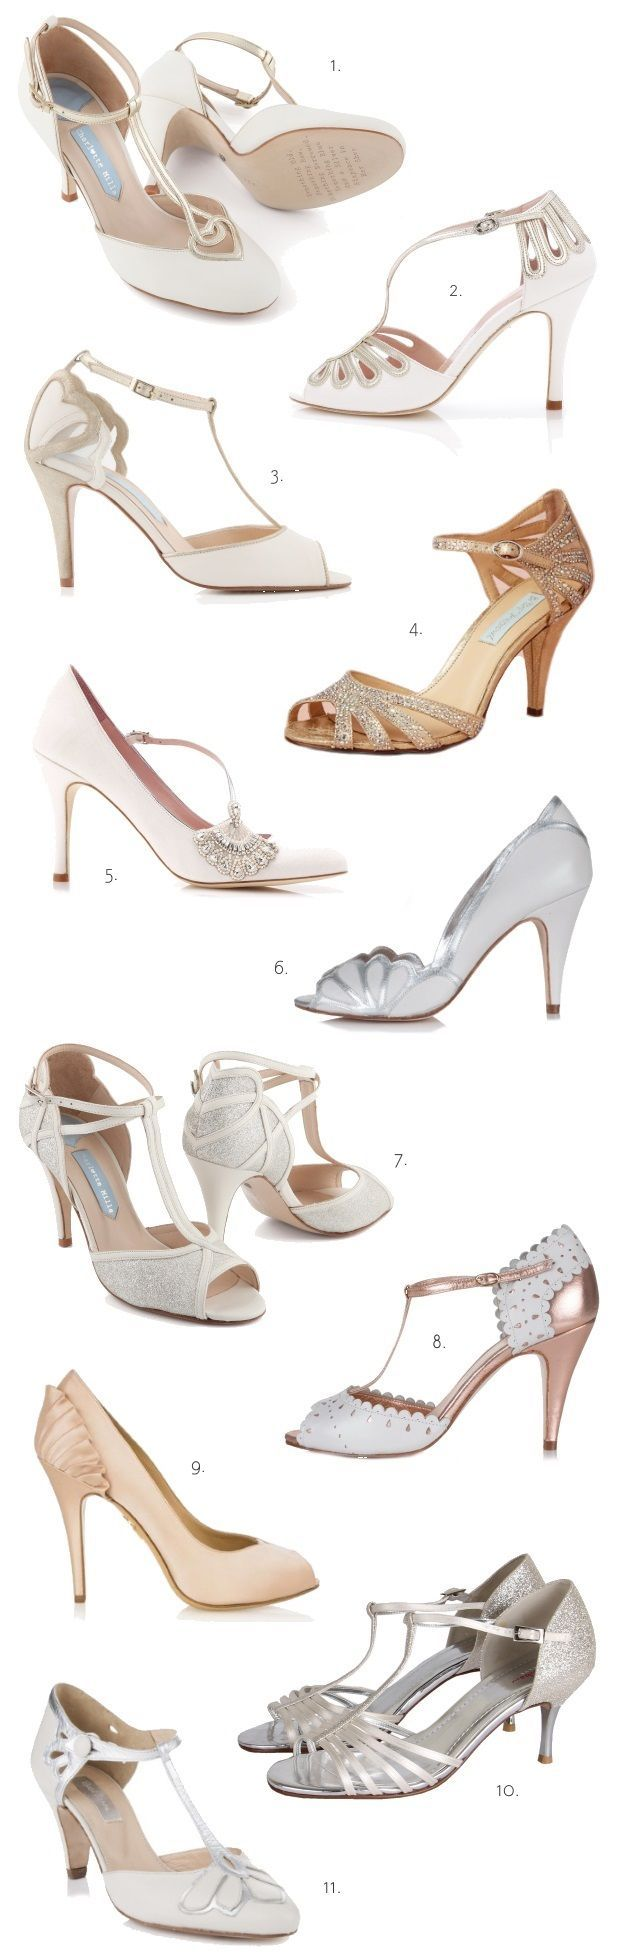 If you're in the market for comfortable, timeless heels for your Big Day, a pair of vintage-inspired wedding shoes should be right up your alley.